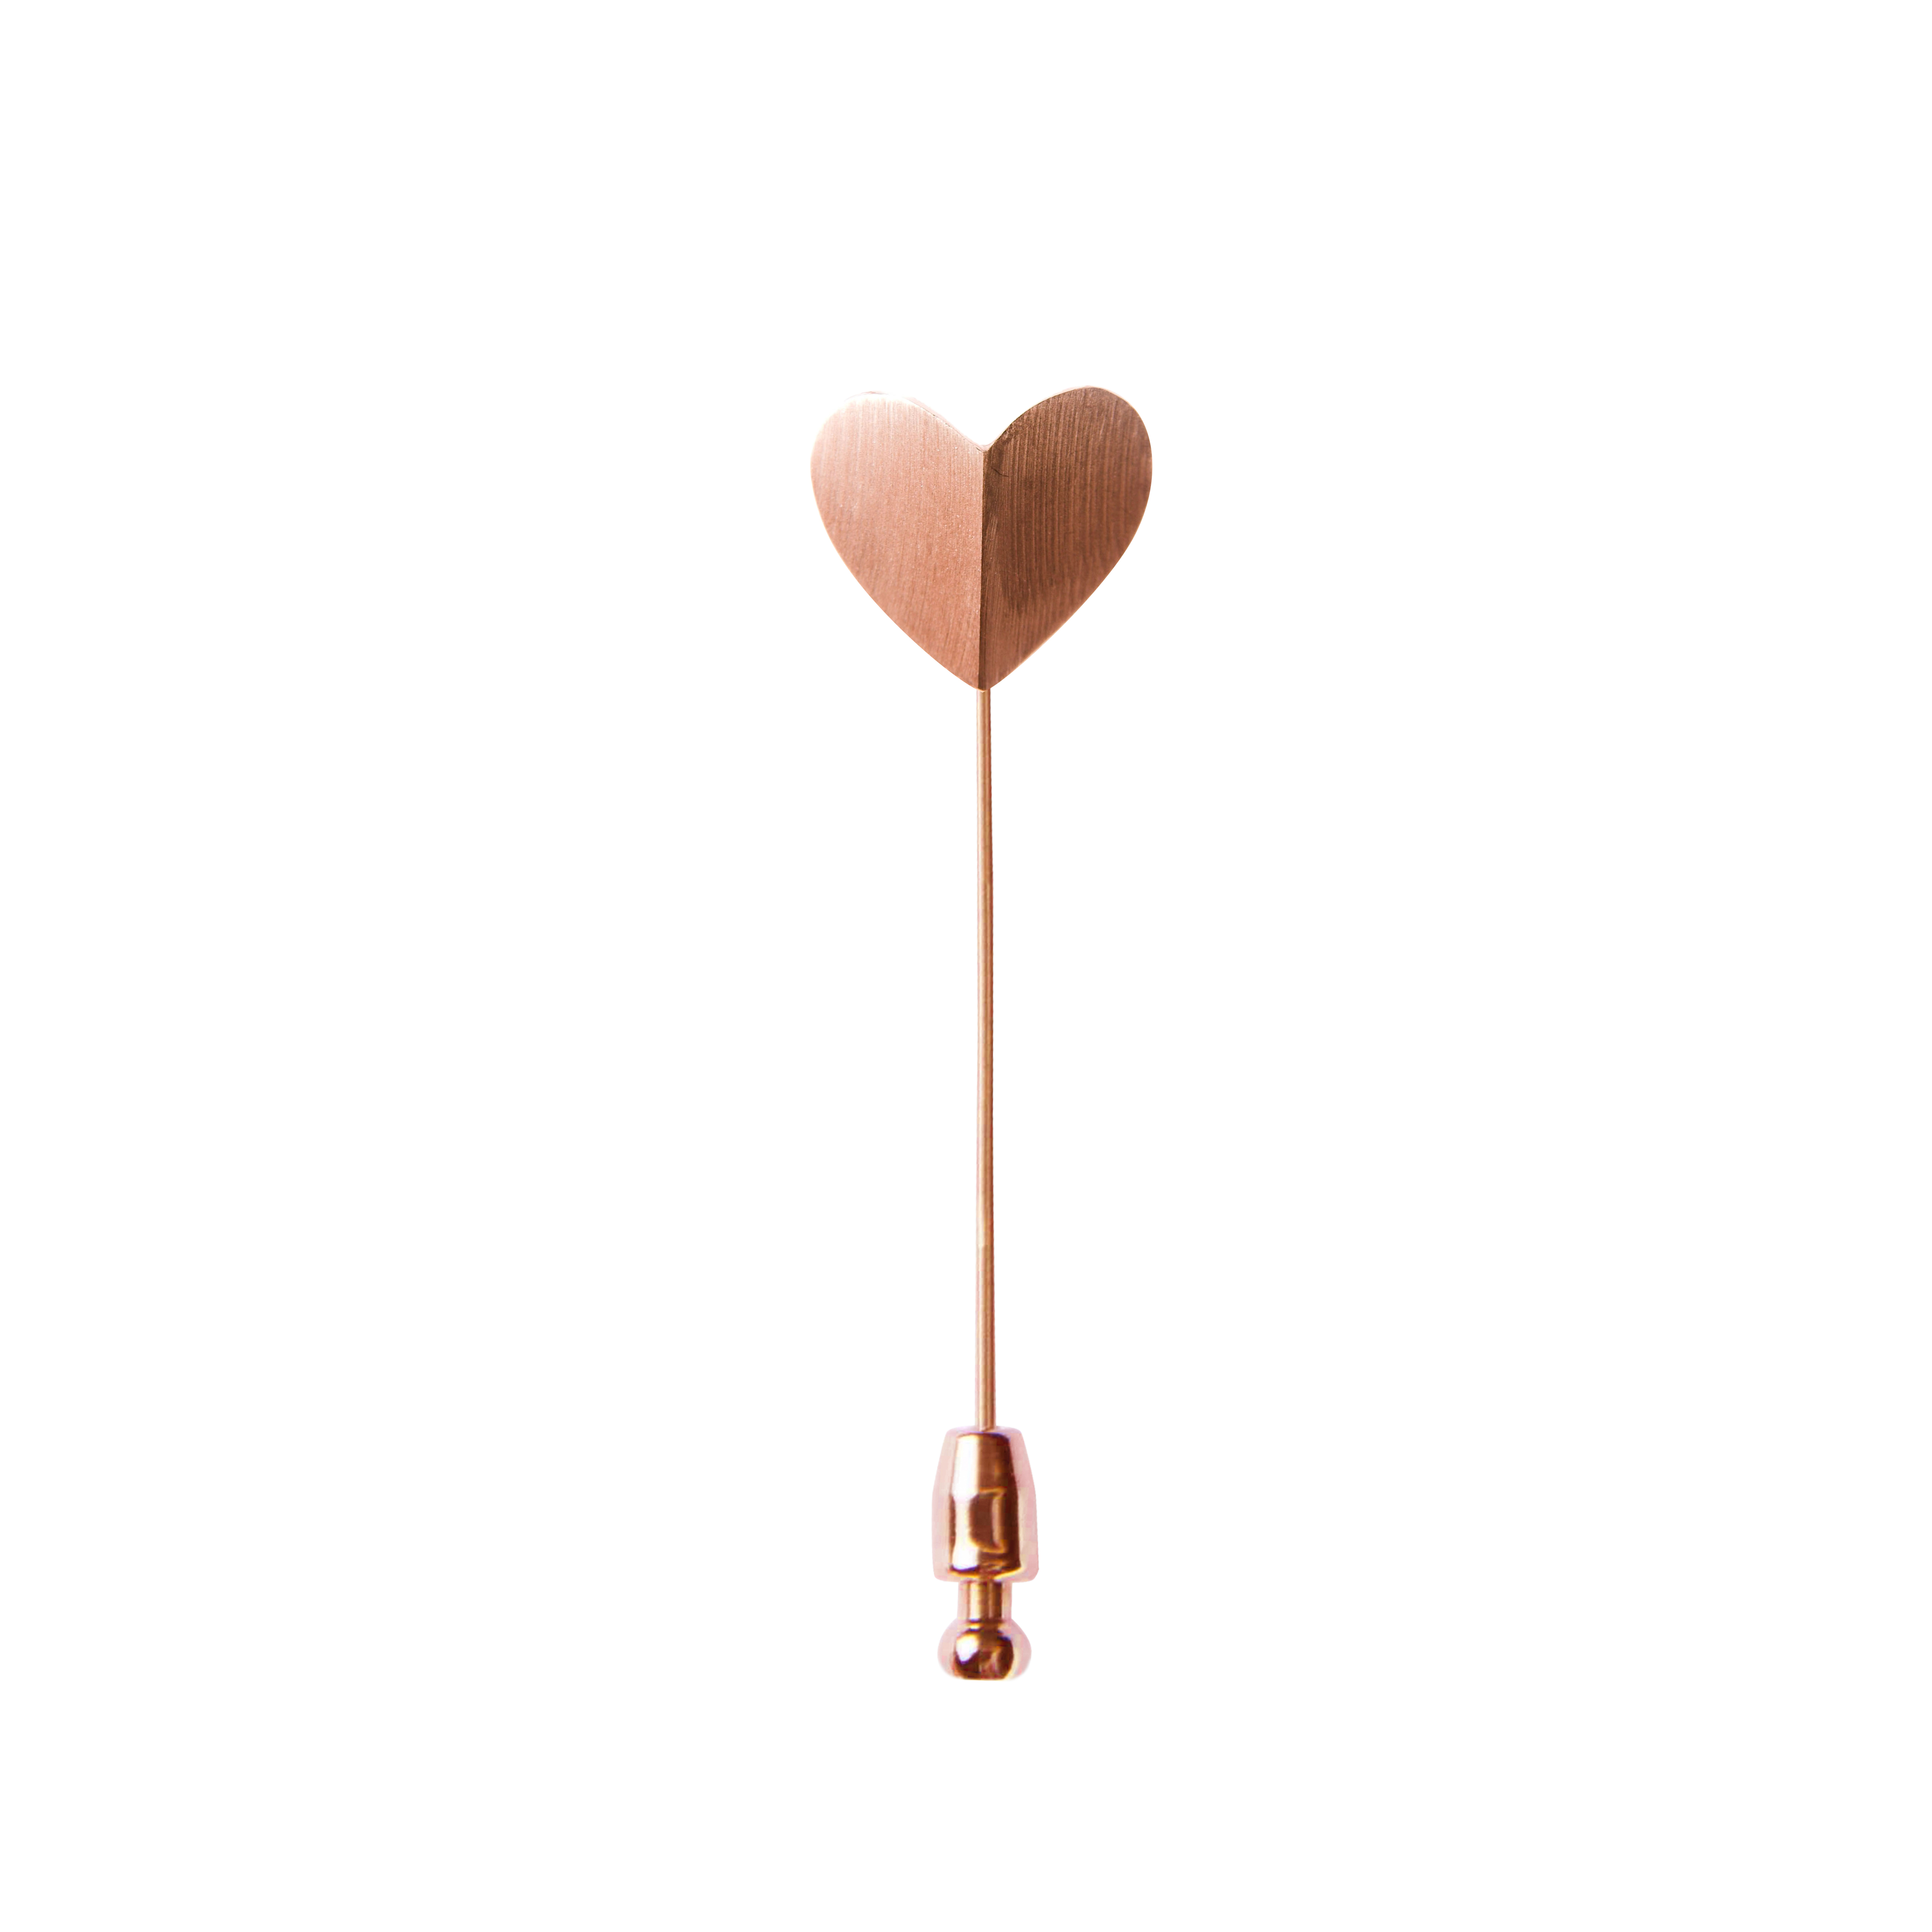 dce600bd156 Home / VOODOO PARADISE / Rose Gold Heart Lapel Pin